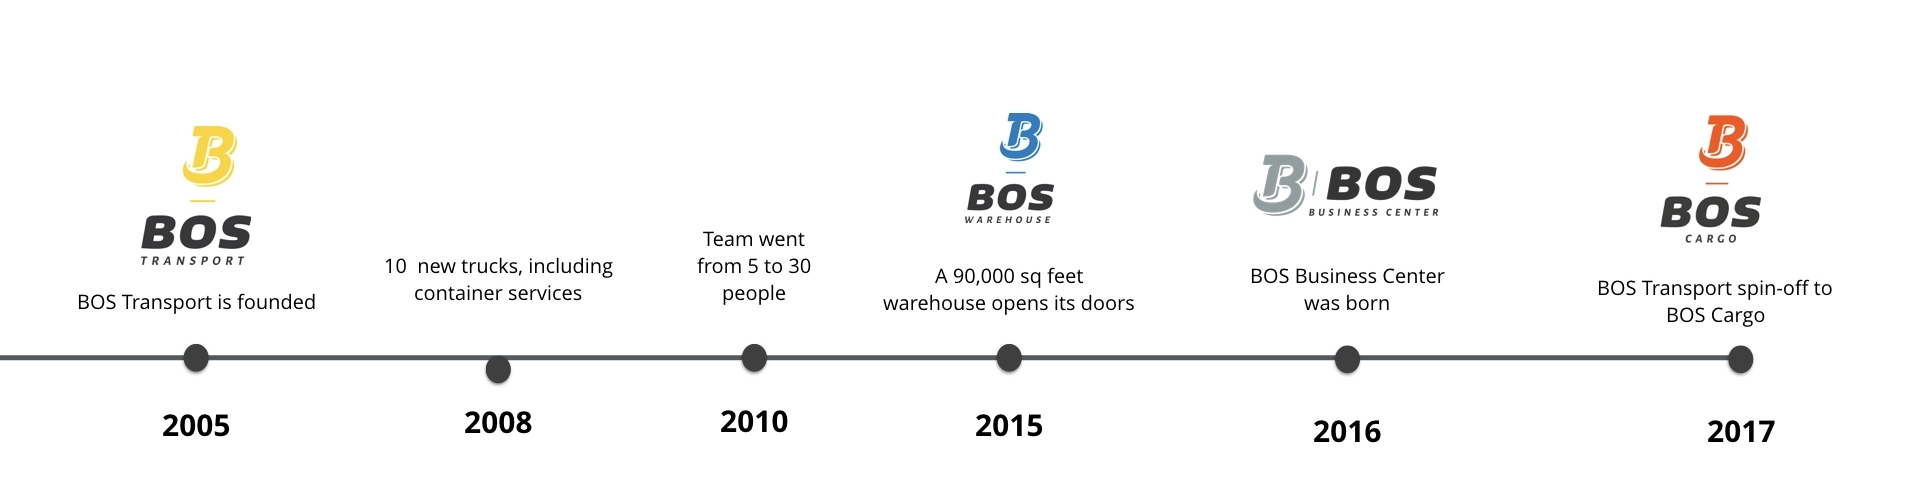 bos-transport-experience